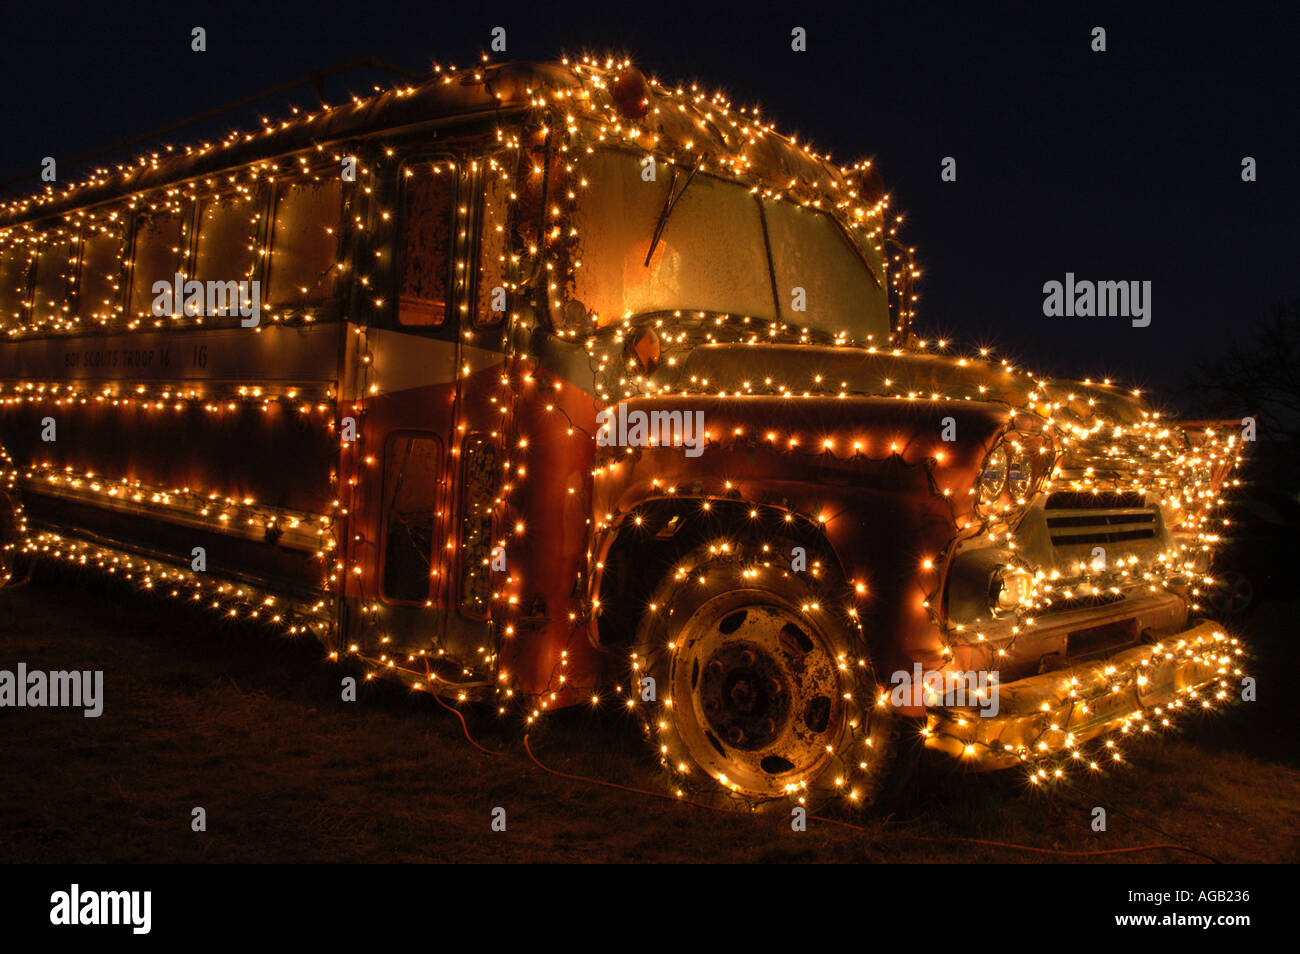 old Chevrolet school bus decorated for Christmas Stock Photo ...